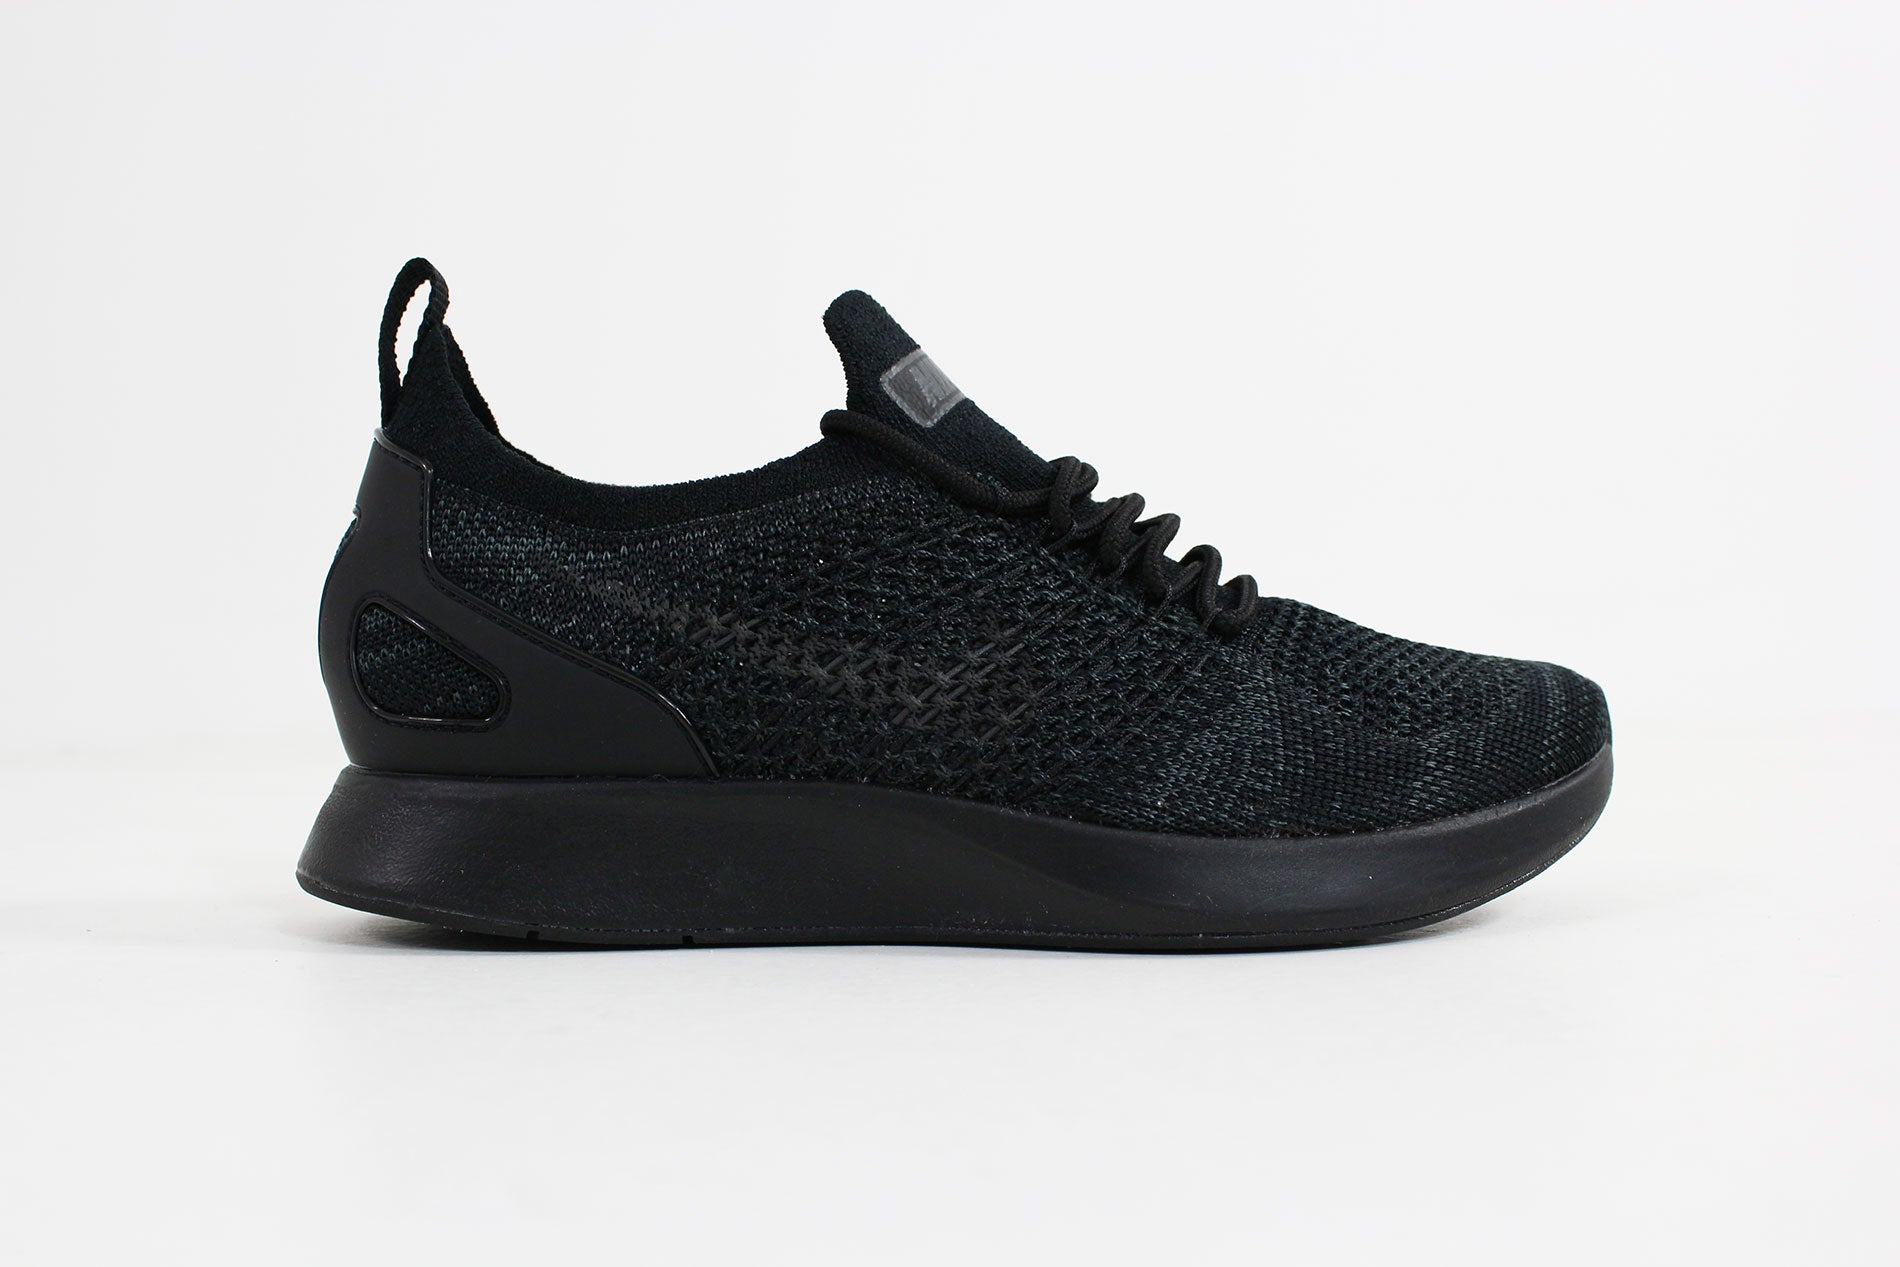 ad3d3e1c9a74 Nike - Air Zoom Mariah Flyknit Racer Women (Black  Anthracite) AA0521-004